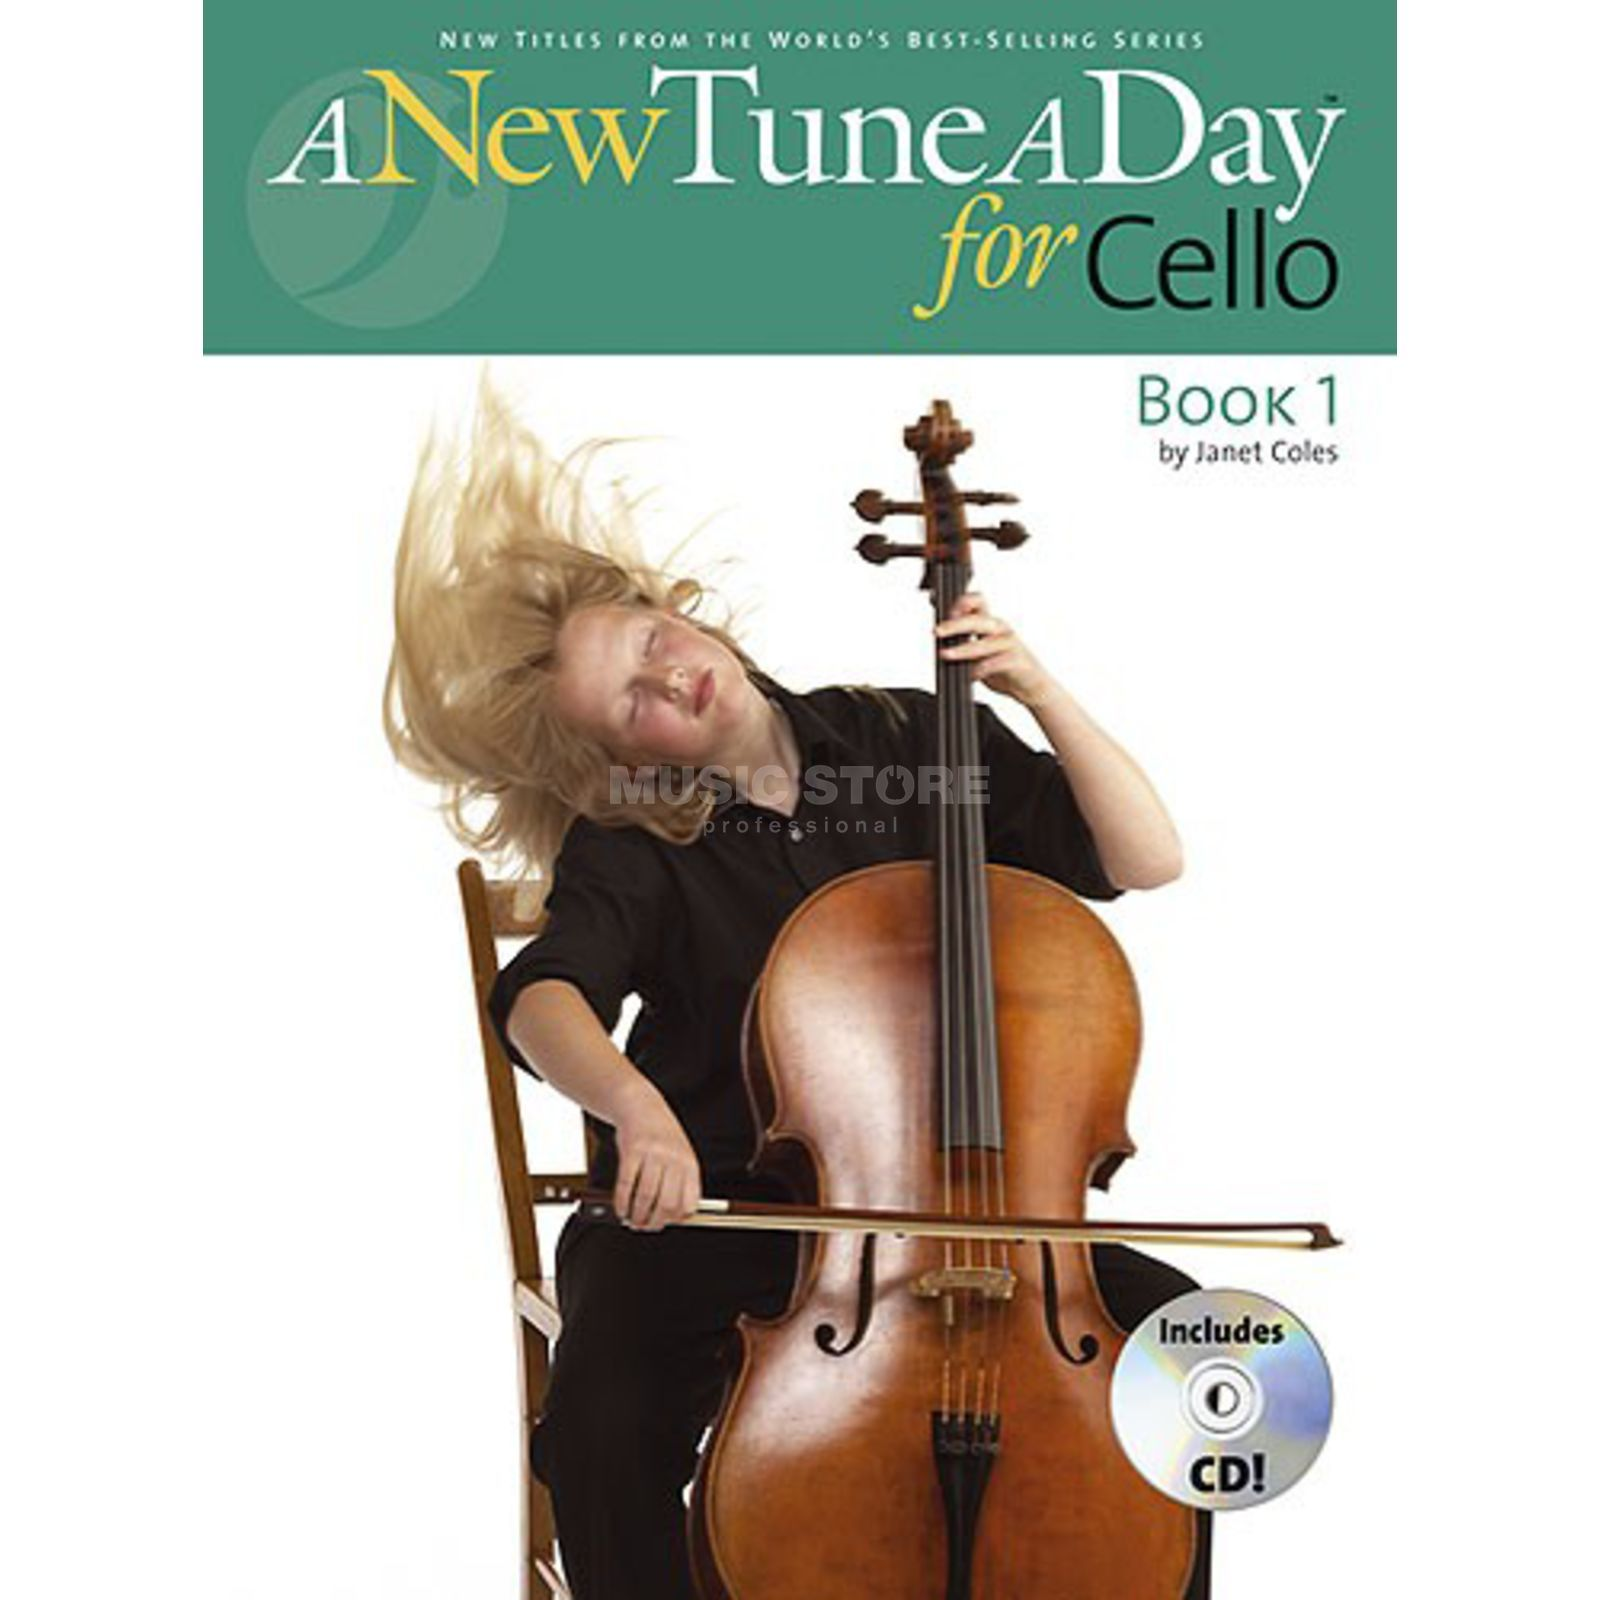 Boston Music A New Tune A Day: Cello Book 1 (CD Edition) Produktbild